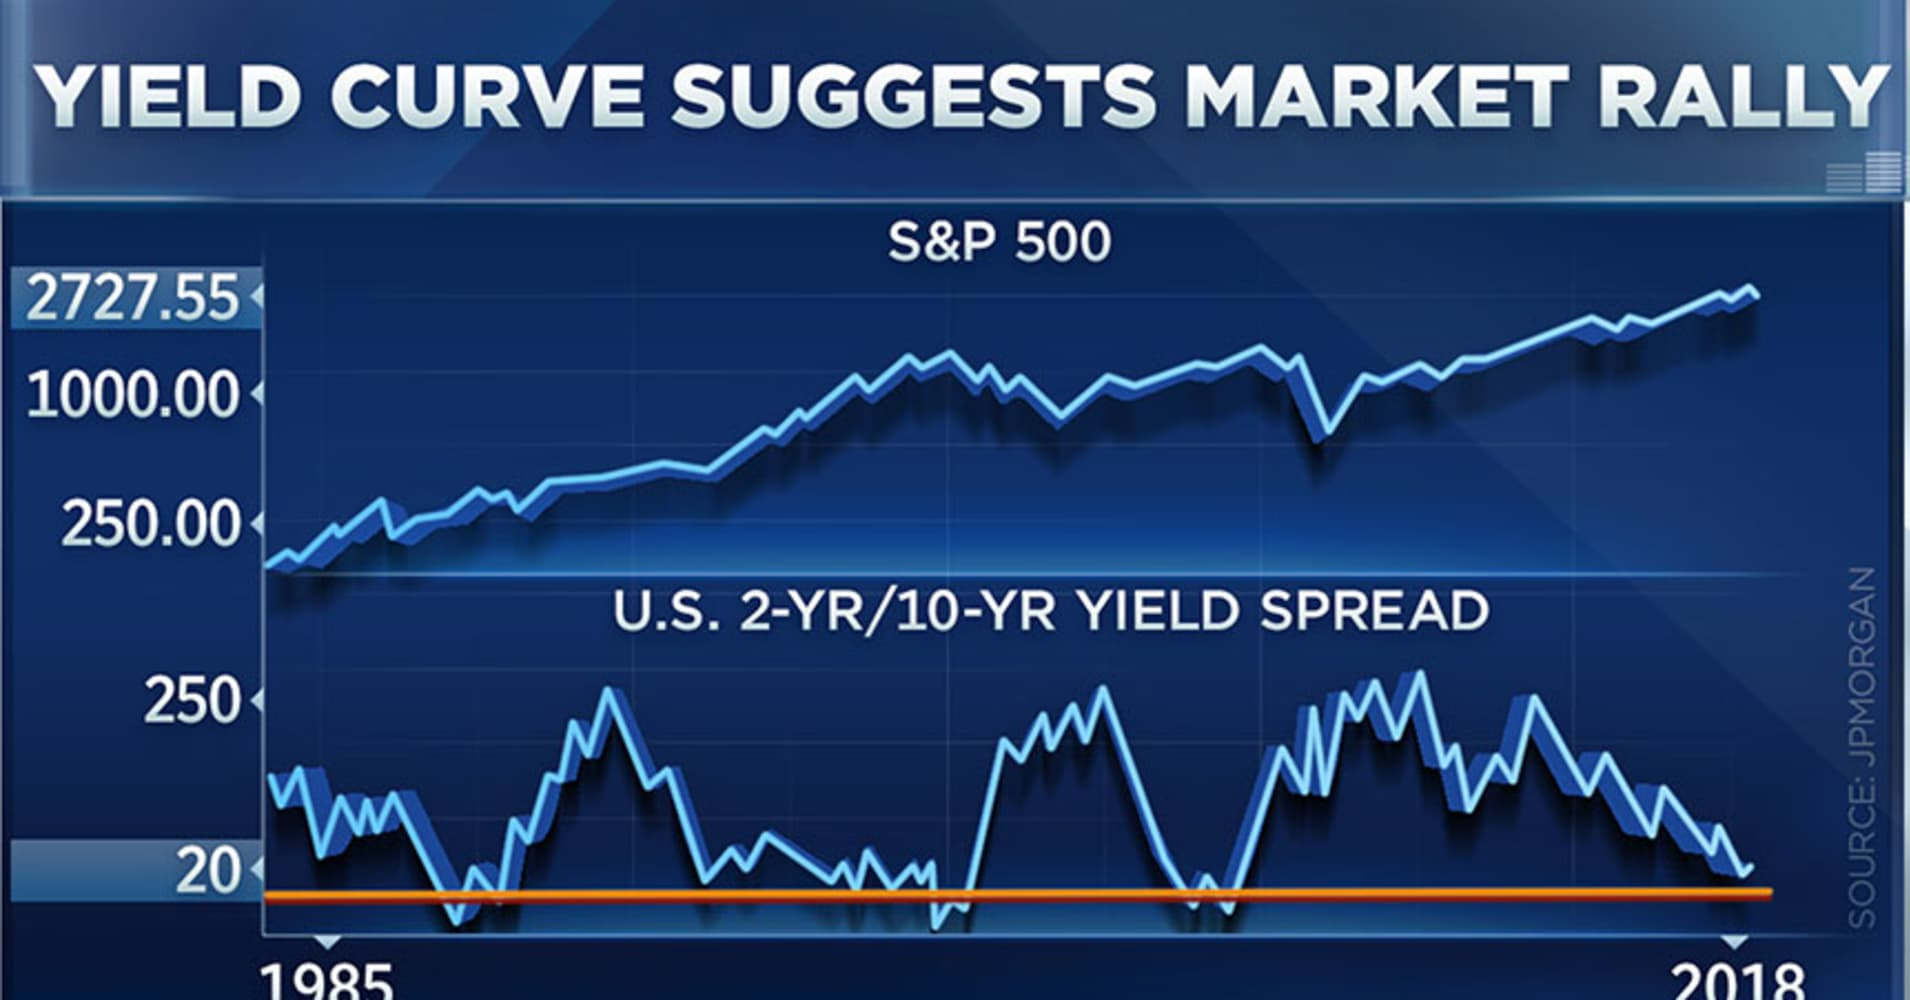 Charts suggest stocks will rip higher into 2019